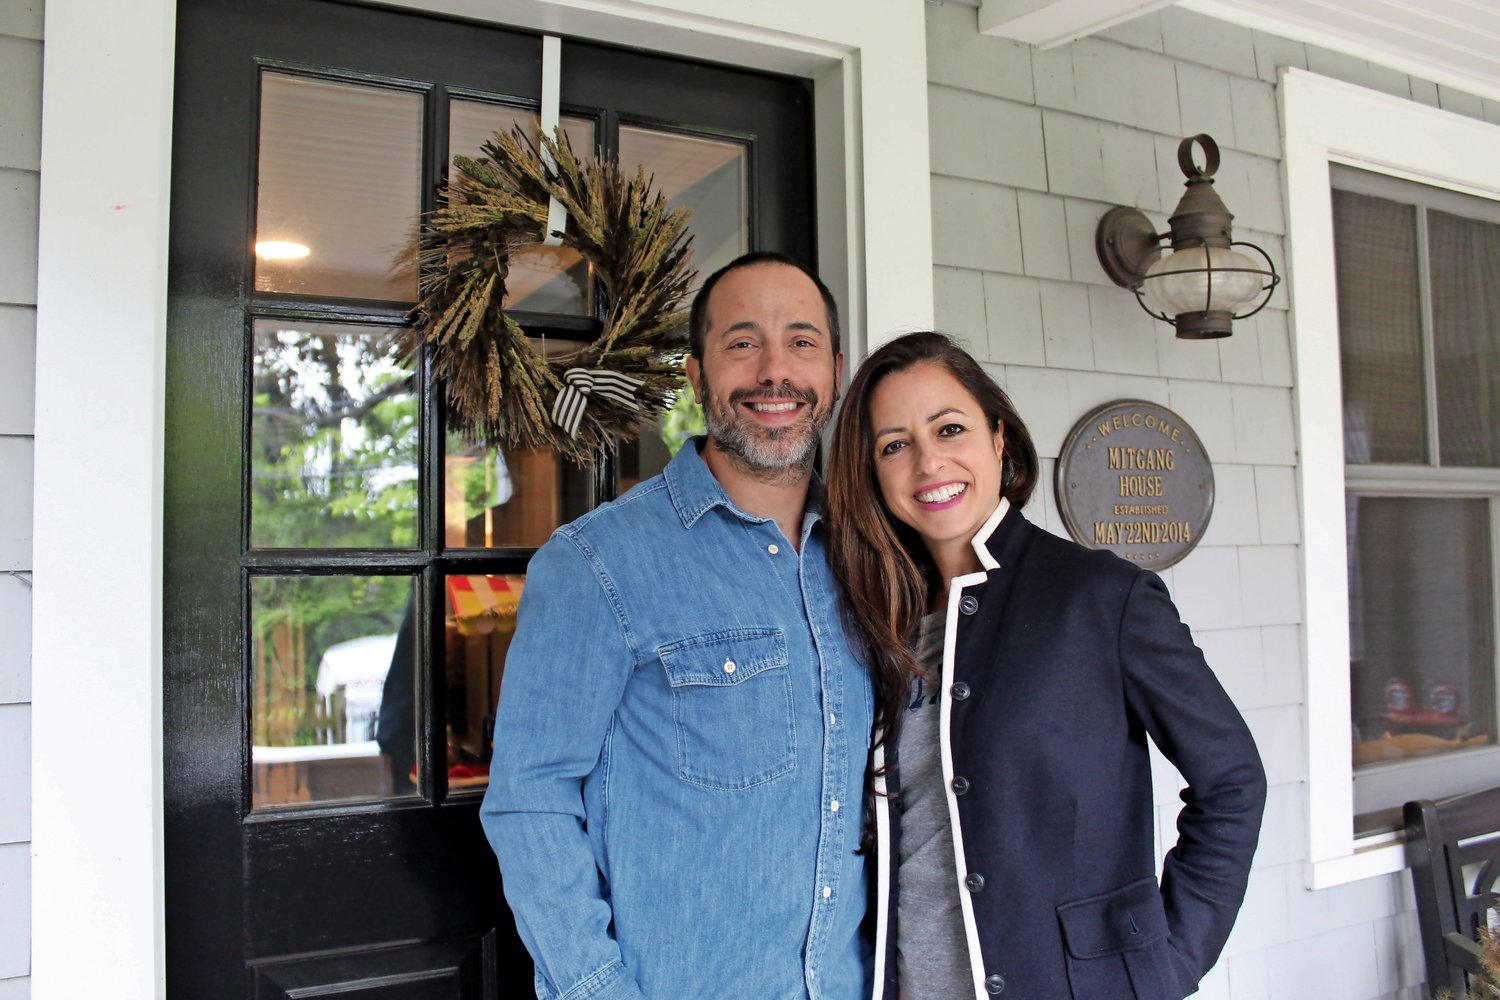 Todd and Colleen Mitgang, who have lived in Sea Cliff for five years, will invite visitors to tour their home this Sunday.